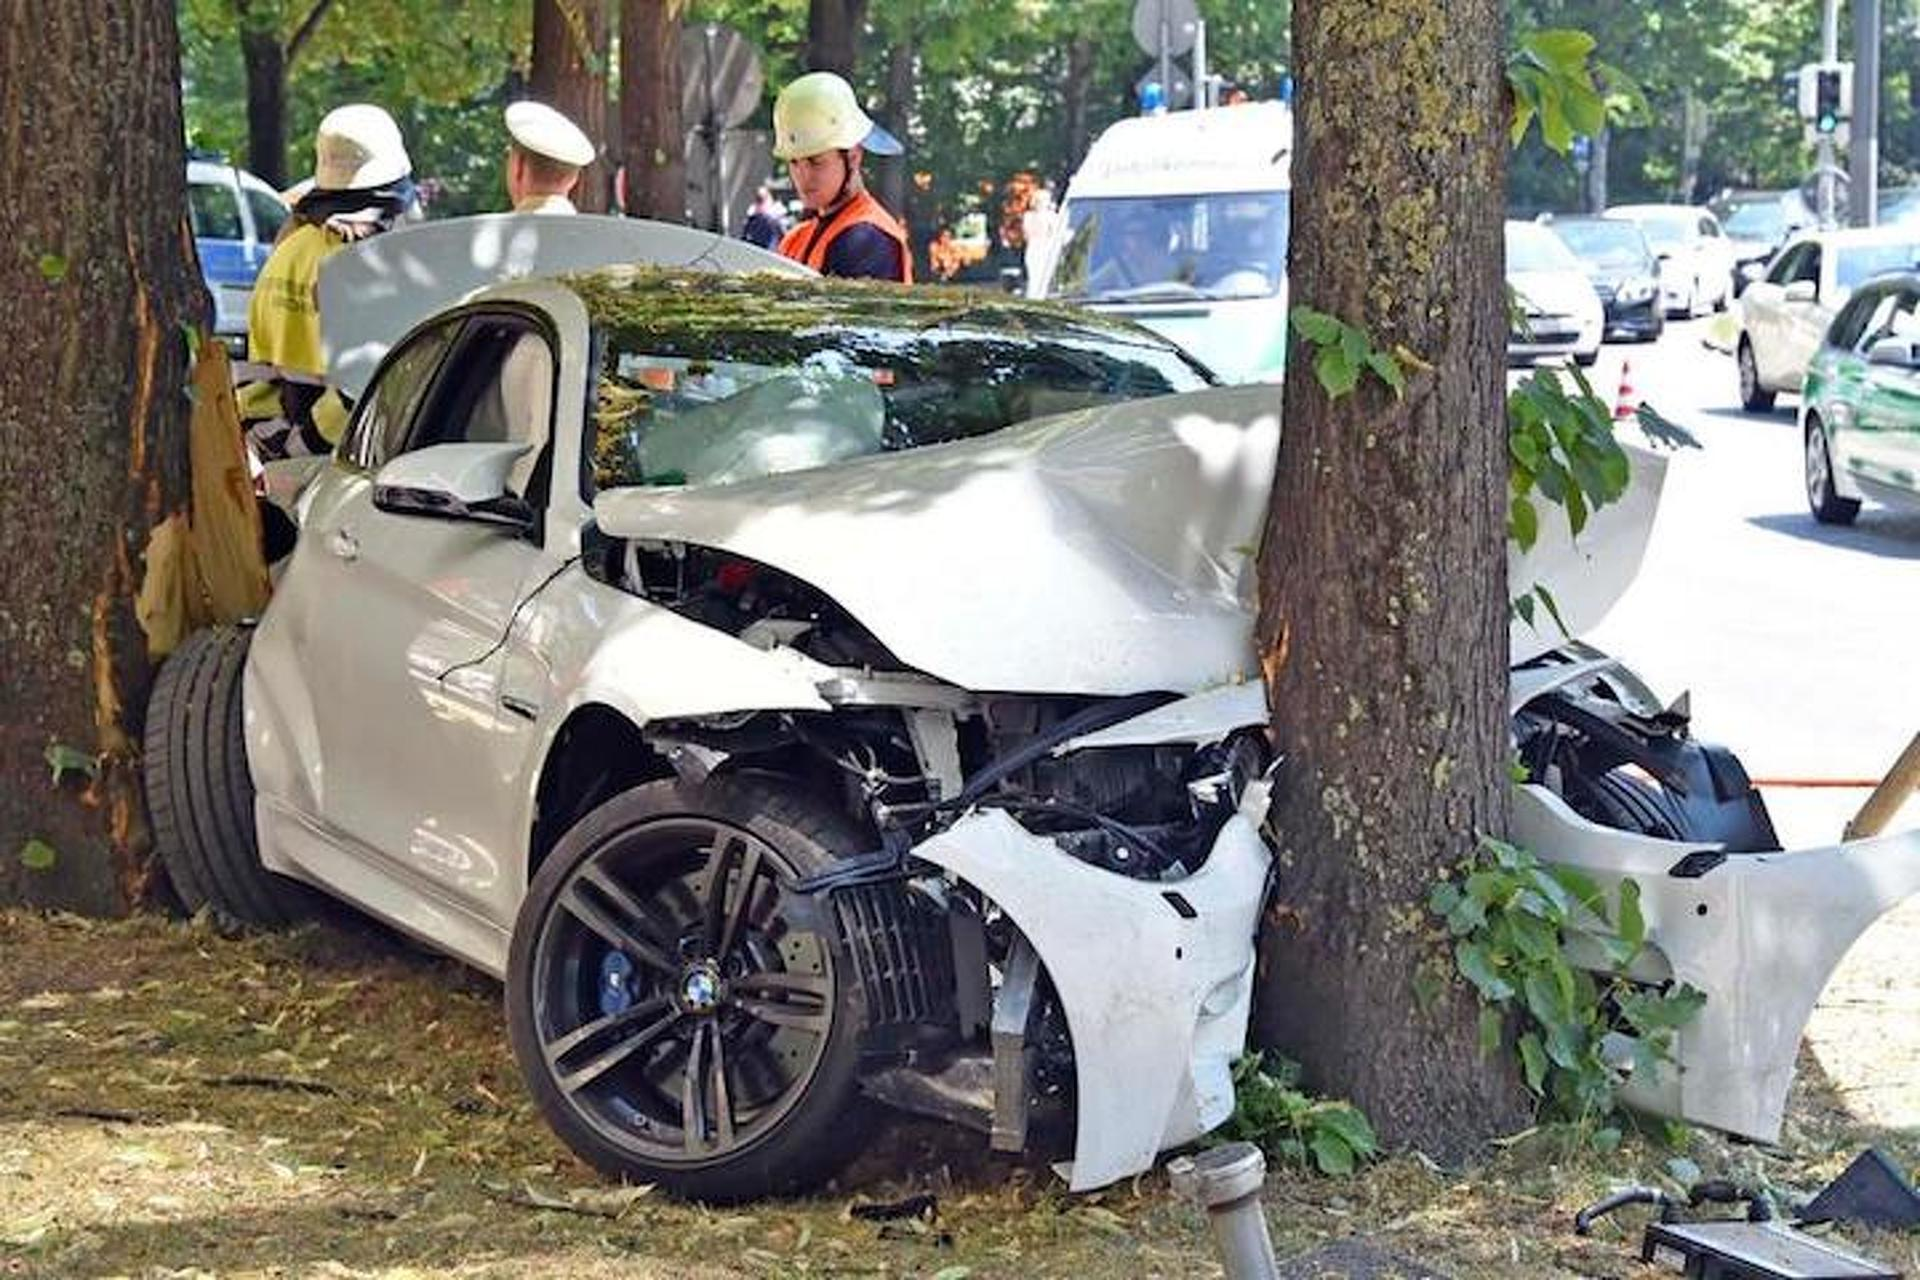 Brand New BMW M4 Crashes Headfirst Into A Tree